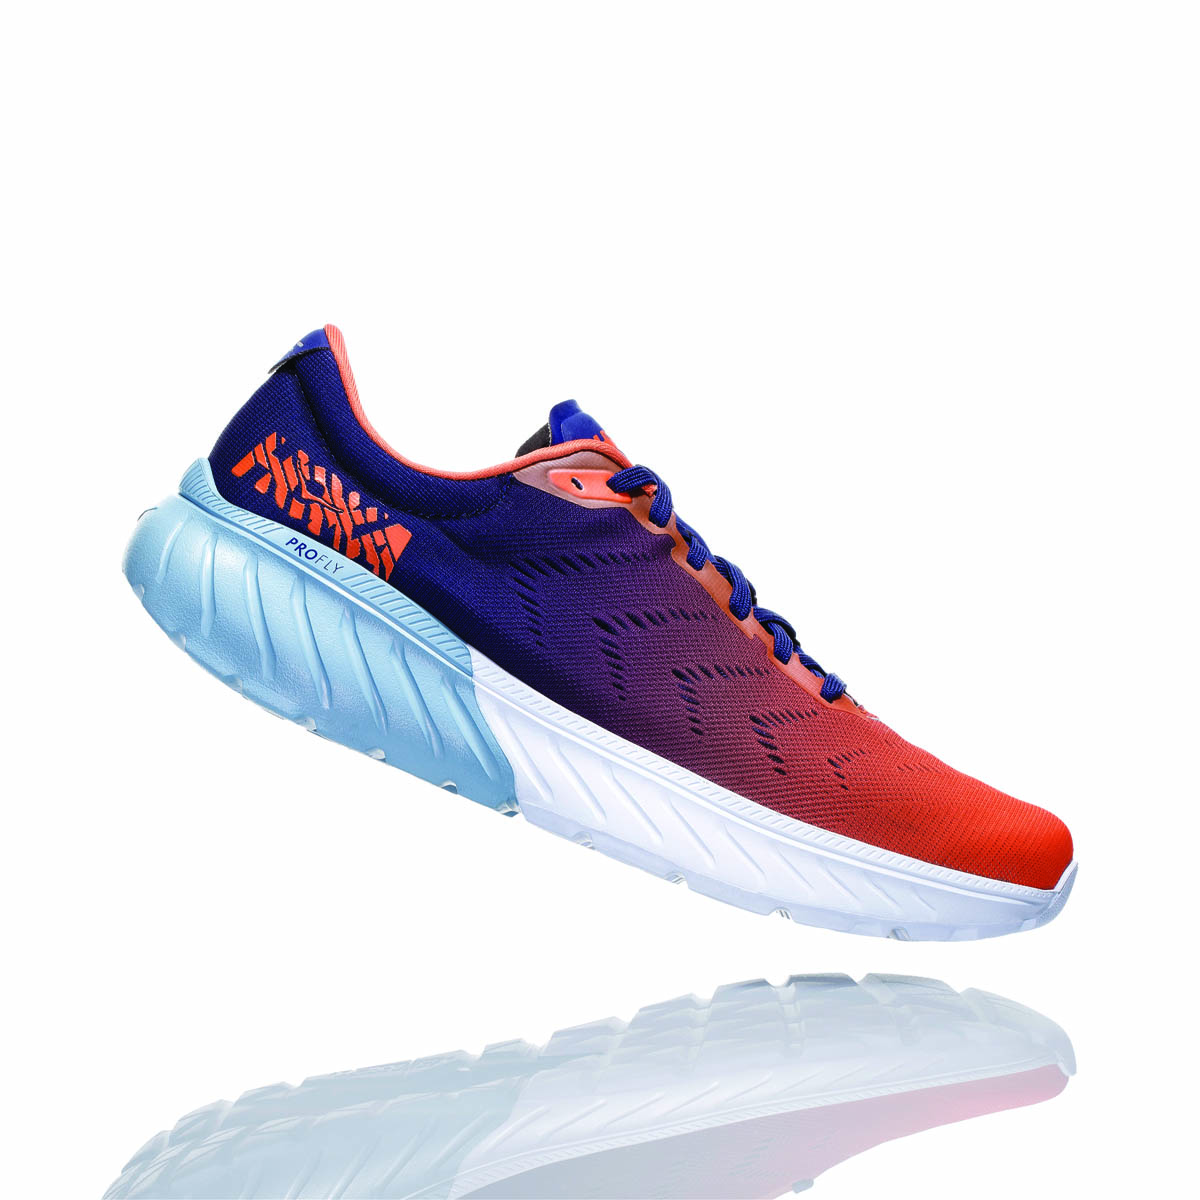 Hoka One One Mach 2